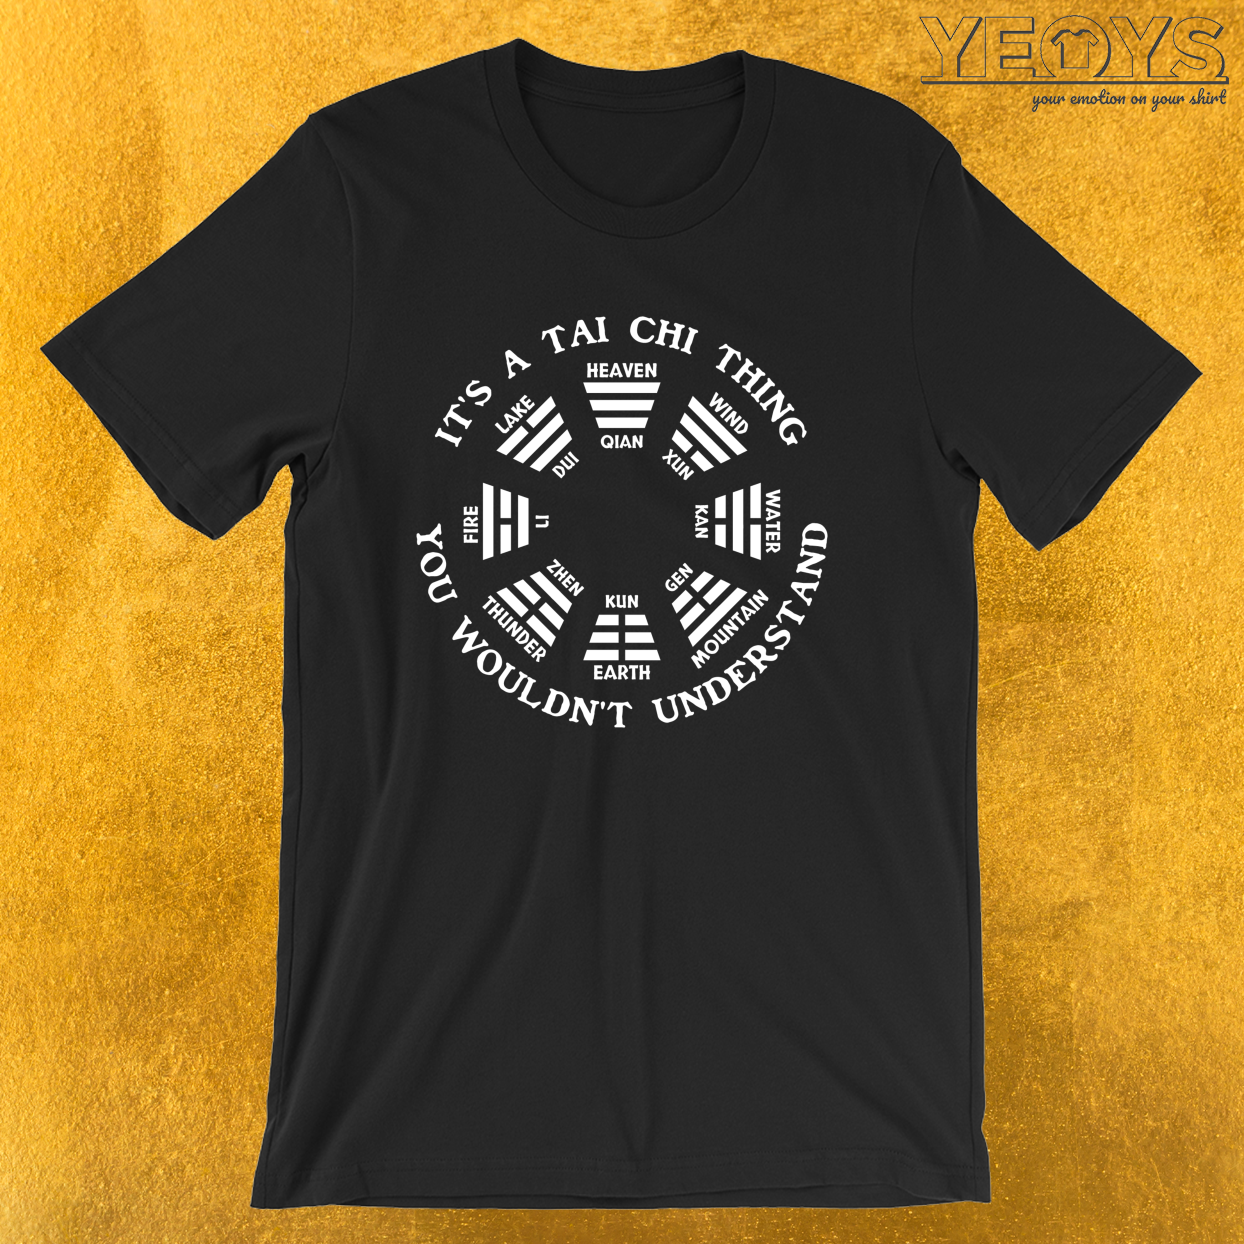 It's A Tai Chi Thing You Wouldn't Understand – Tai Chi Chuan Tee